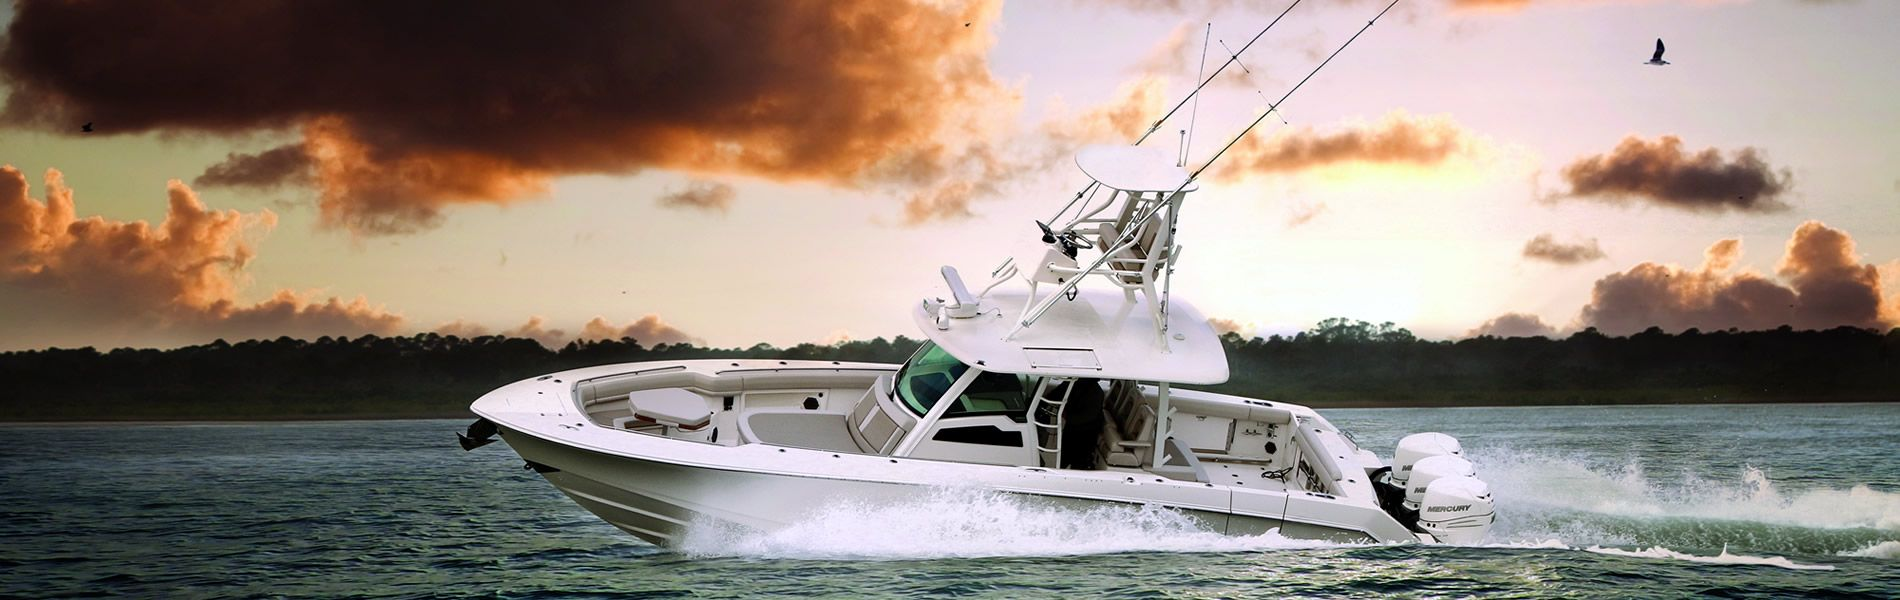 Get More Deals Done With Expert Boat Financing